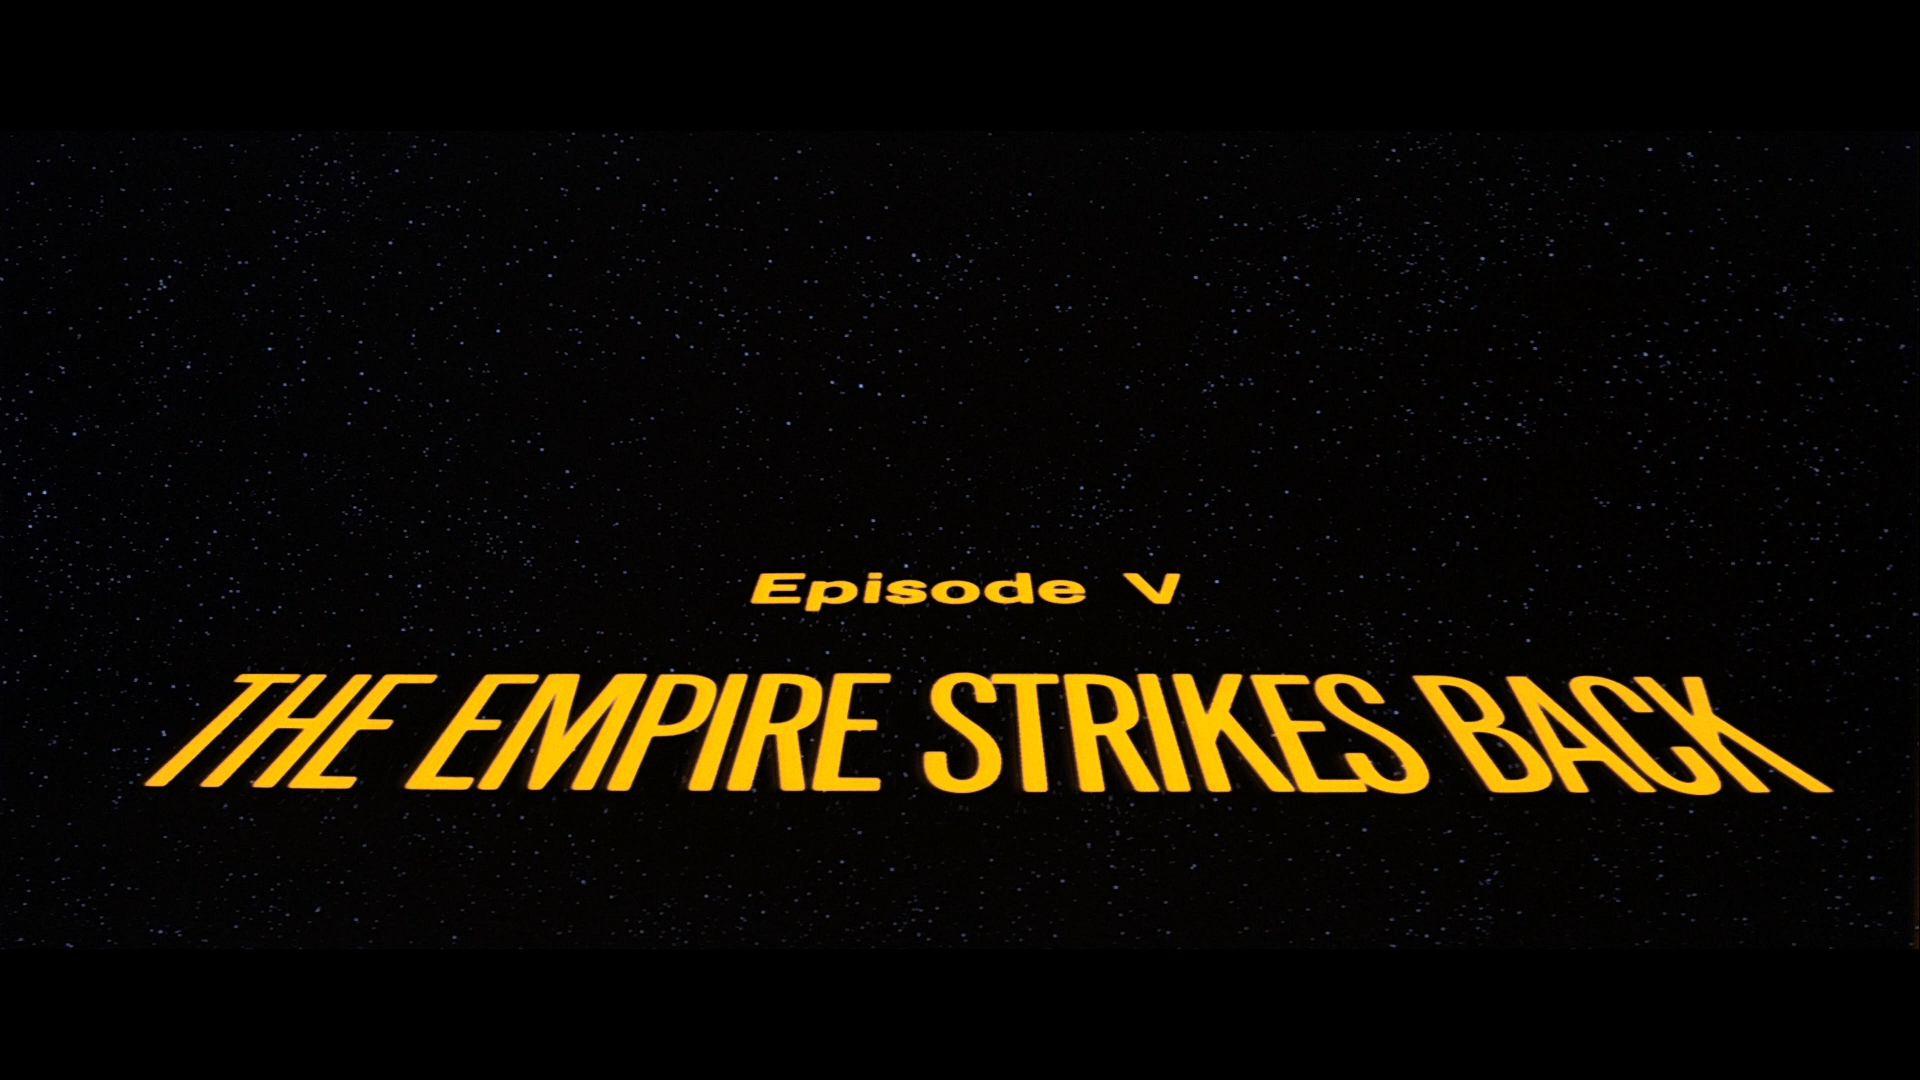 Star Wars Episode V: The Empire Strikes Back Full HD Wallpapers and